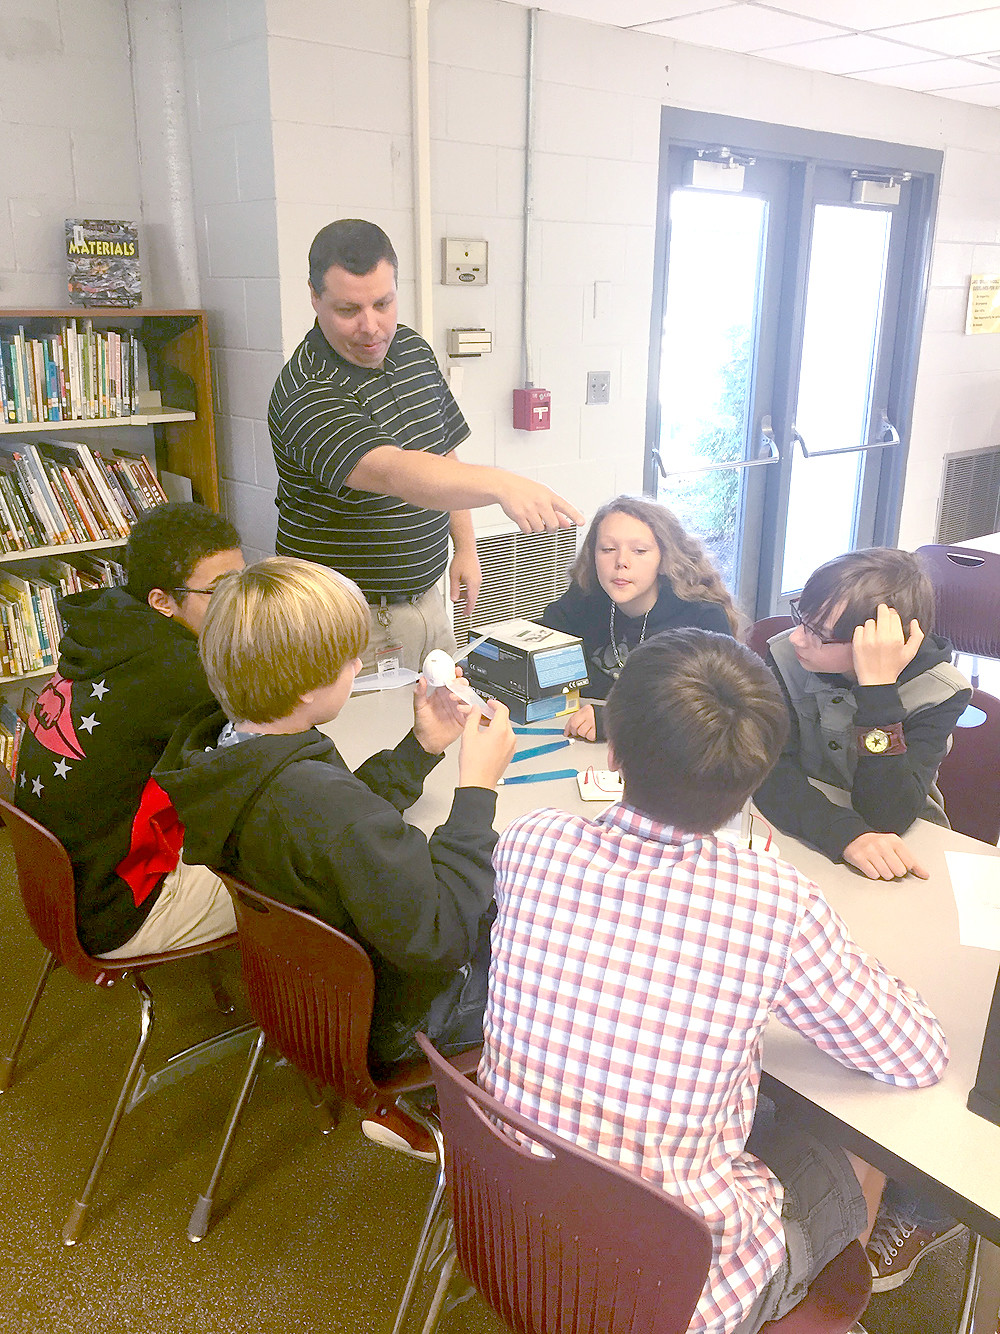 LAKE FOREST MIDDLE students participate in a wind power activity under the direction of teacher Jason Viviano. Tennessee Tech University's Makers on the Move program provided this activity to students during Manufacturing Week.